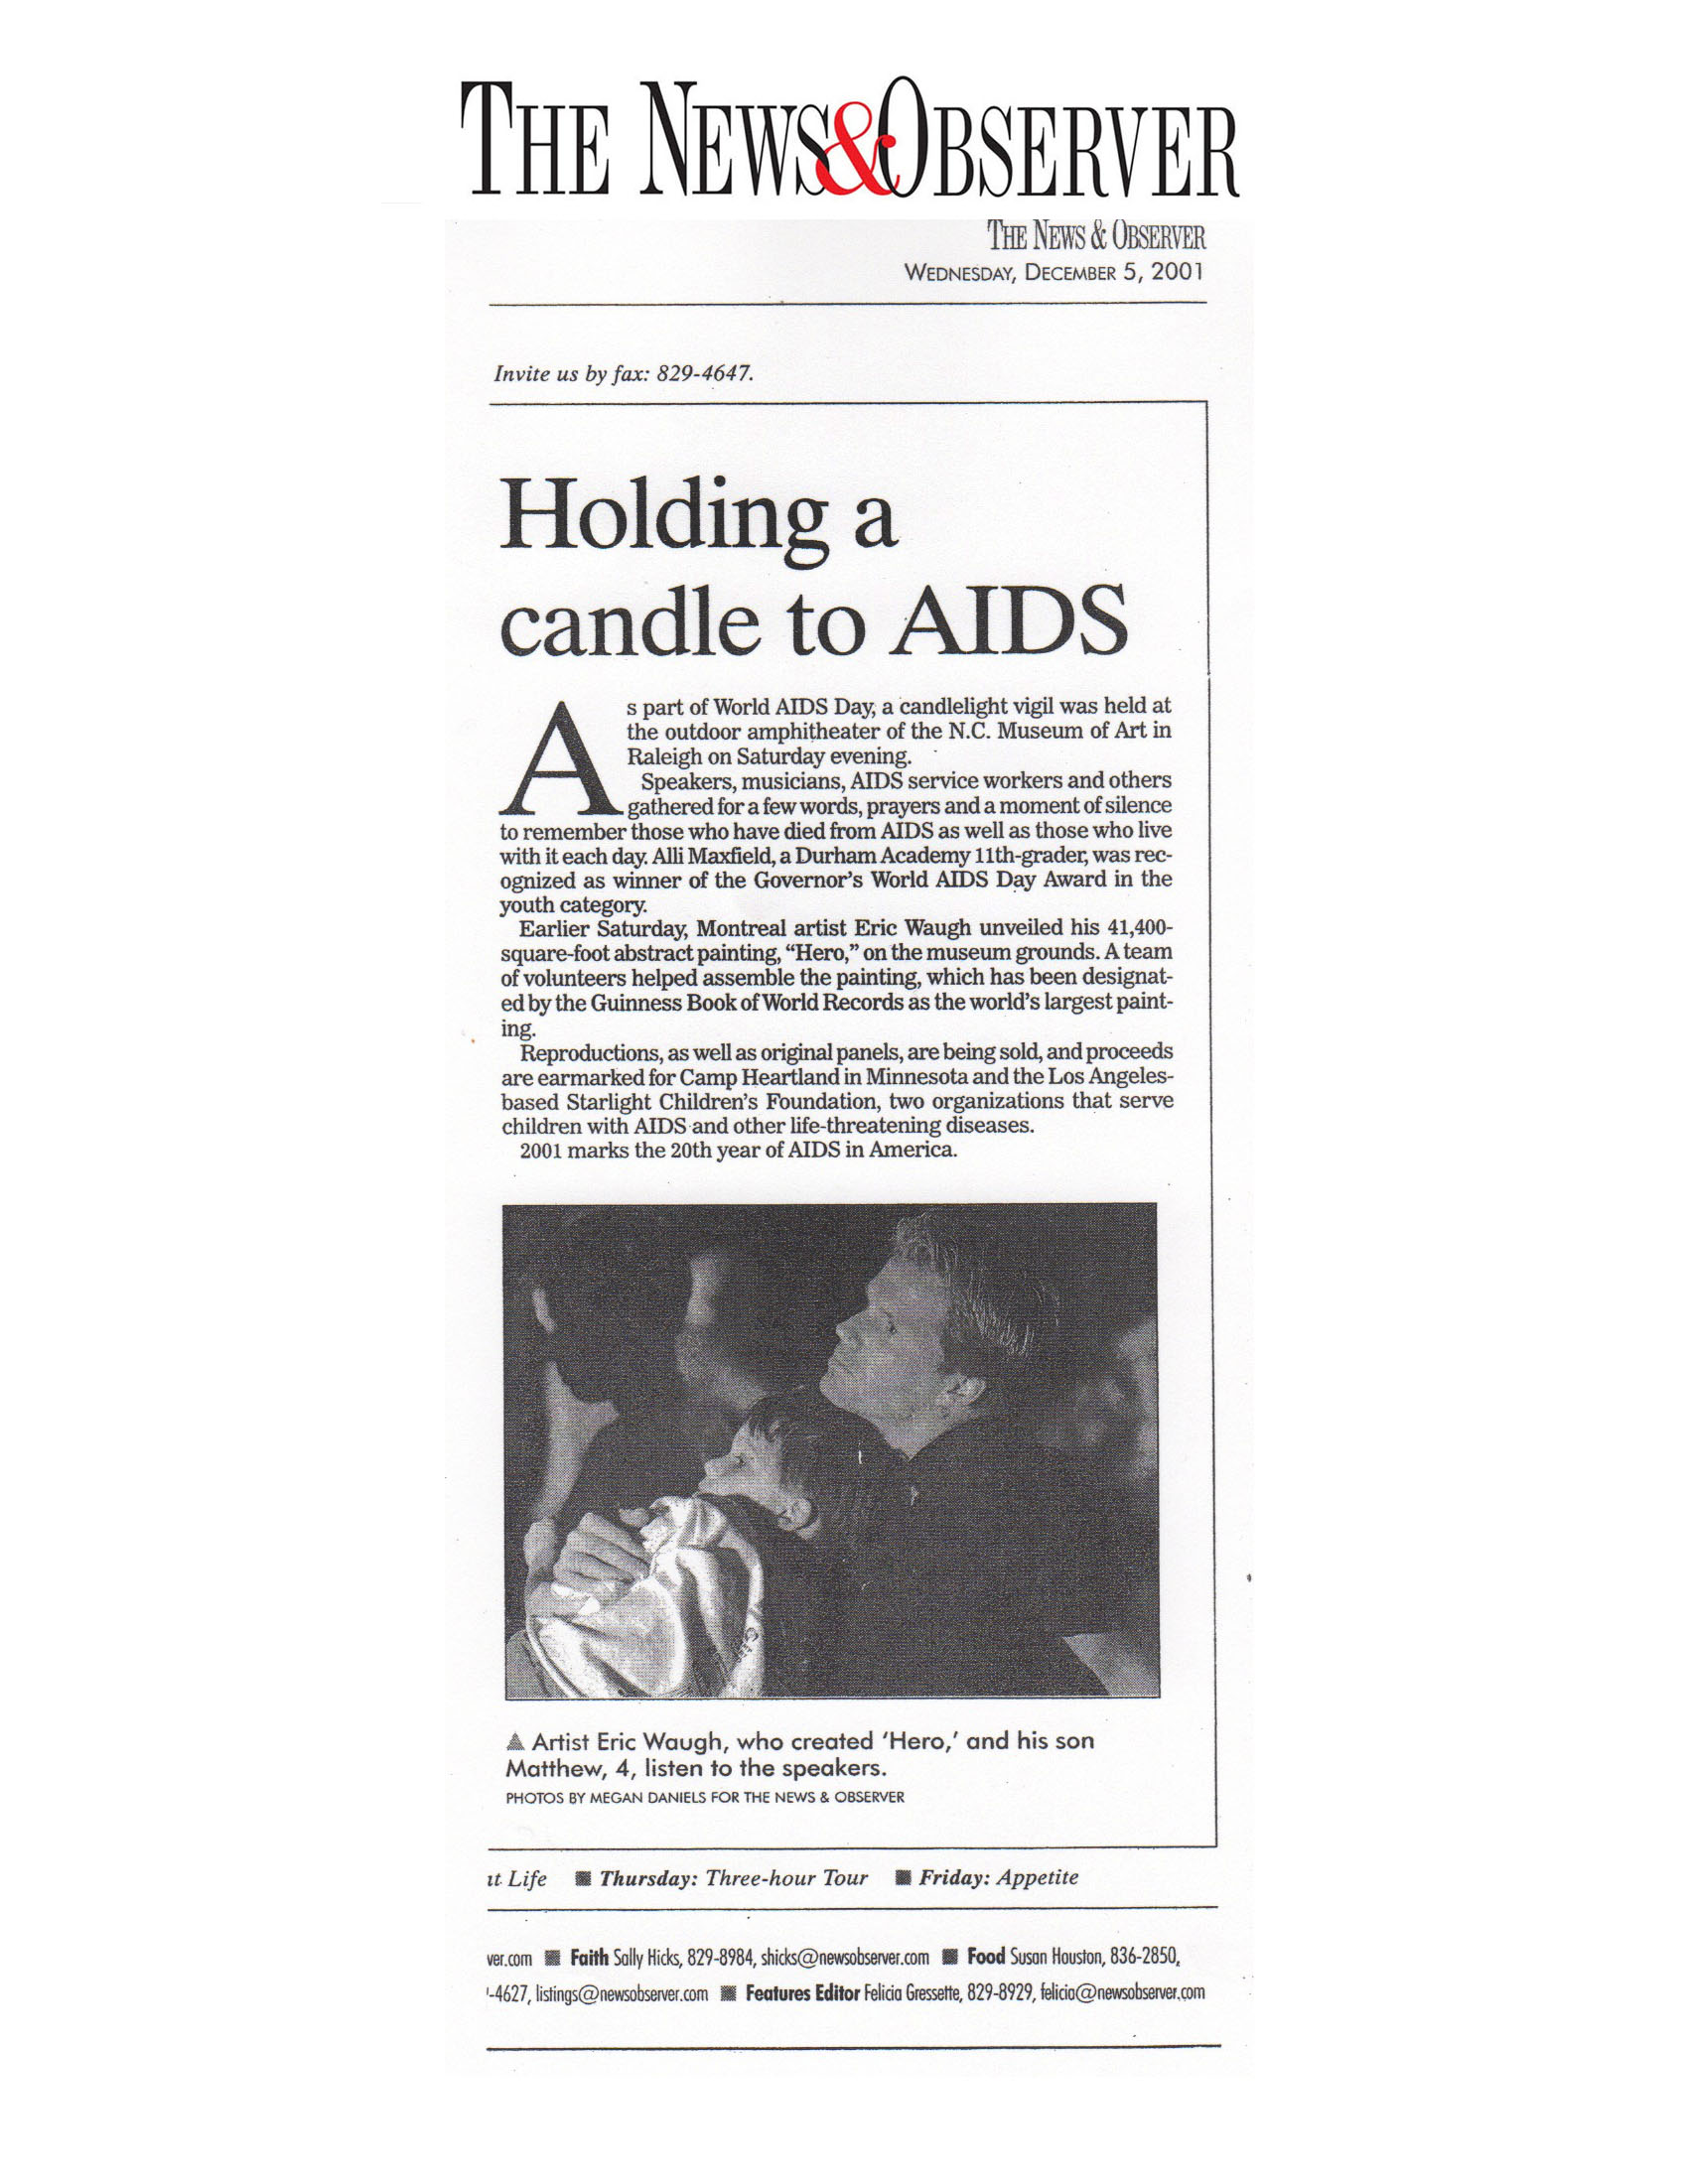 the news and observer holding a candle.jpg